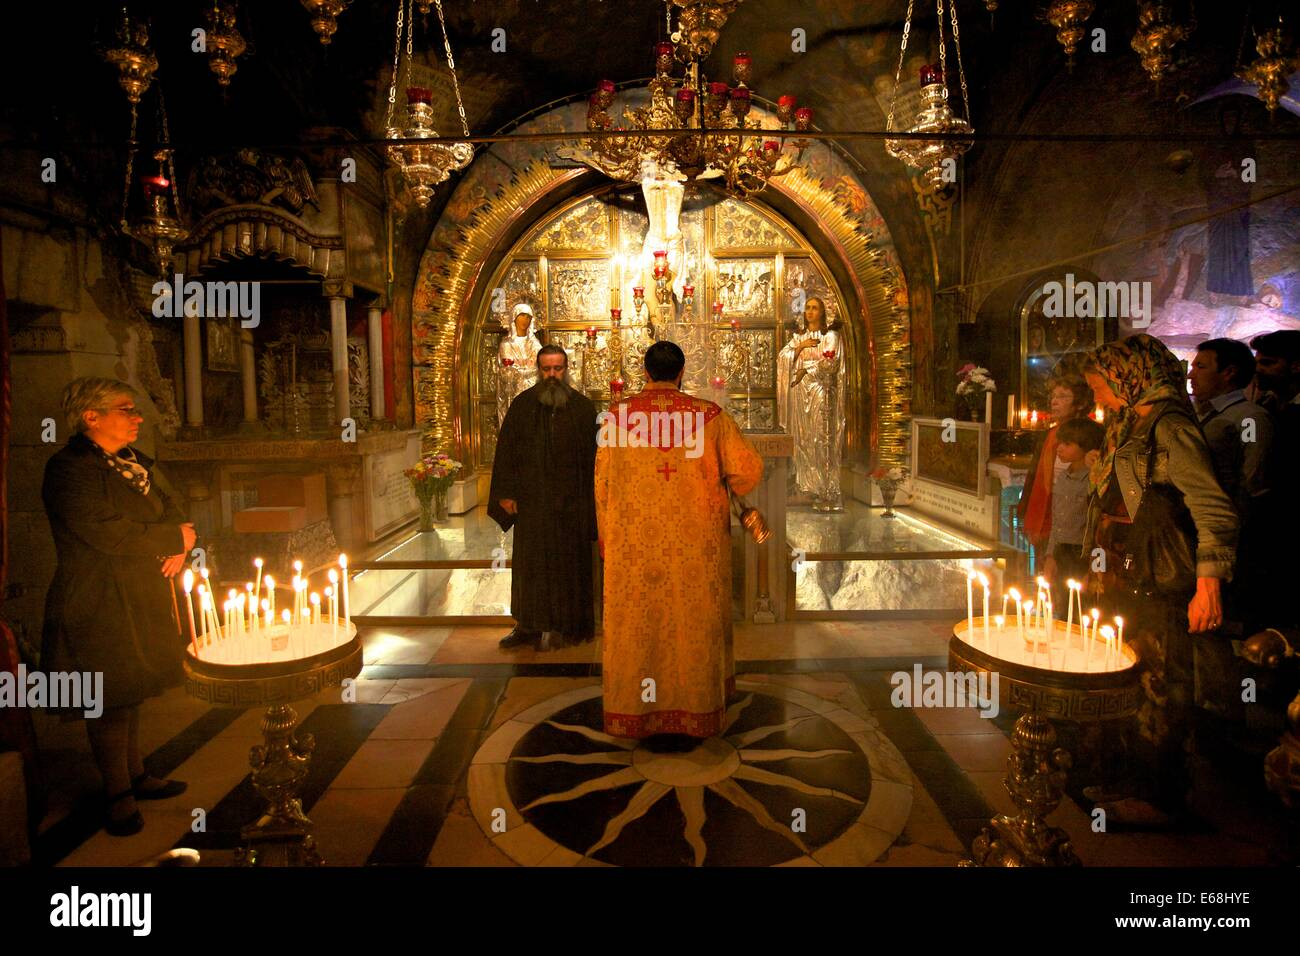 Golgotha, Church Of The Holy Sepulchre, Jerusalem, Israel, Middle East - Stock Image